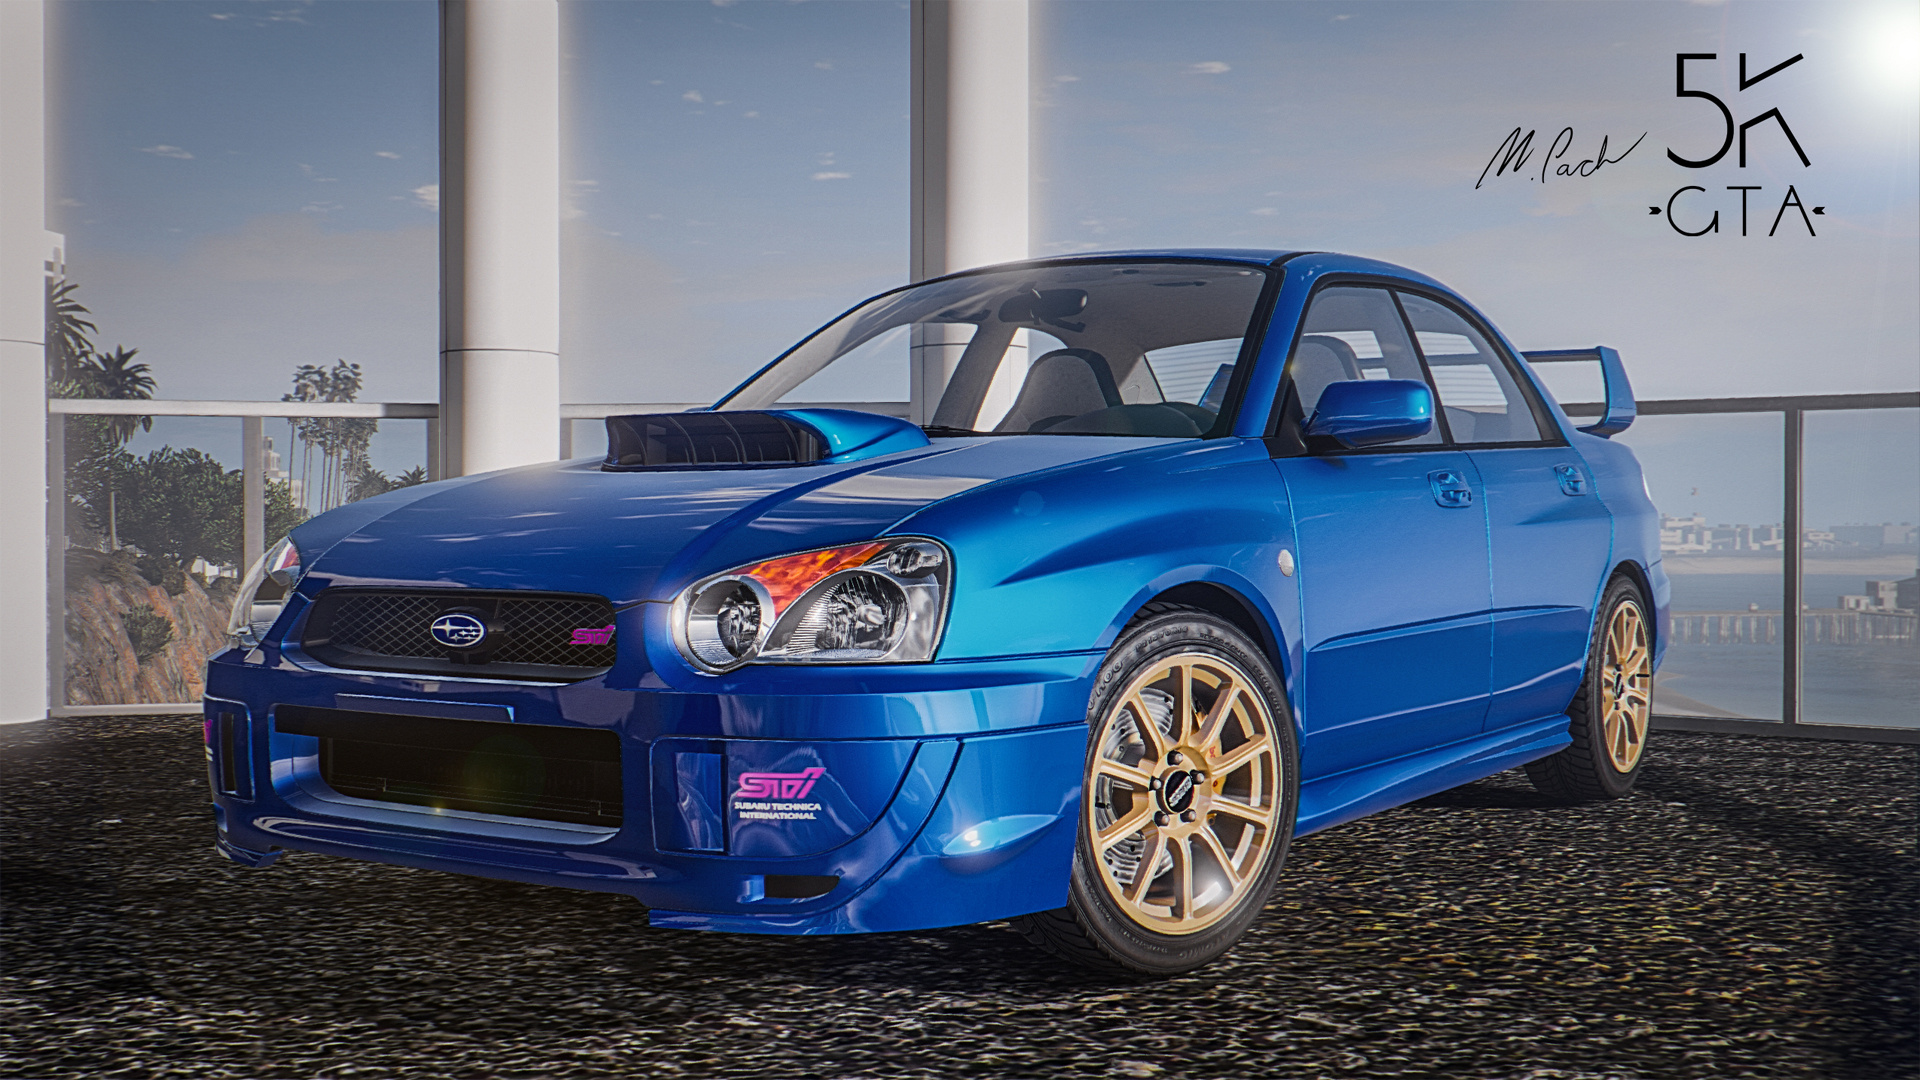 subaru impreza wrx sti 2004 add on tuning gta5. Black Bedroom Furniture Sets. Home Design Ideas